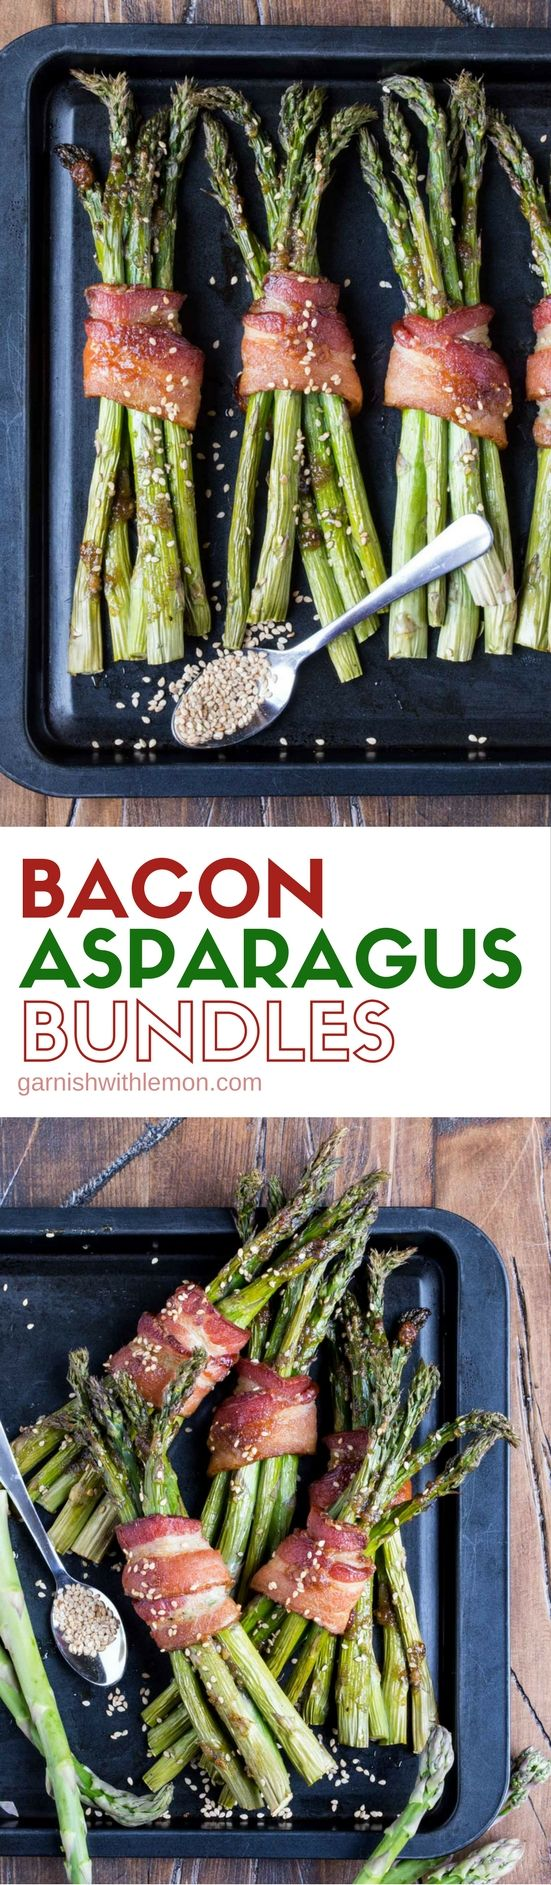 Need an easy side dish for a crowd? These Bacon Asparagus Bundles with a hint of sesame flavoring can be prepared ahead of time and baked when guests arrive!: